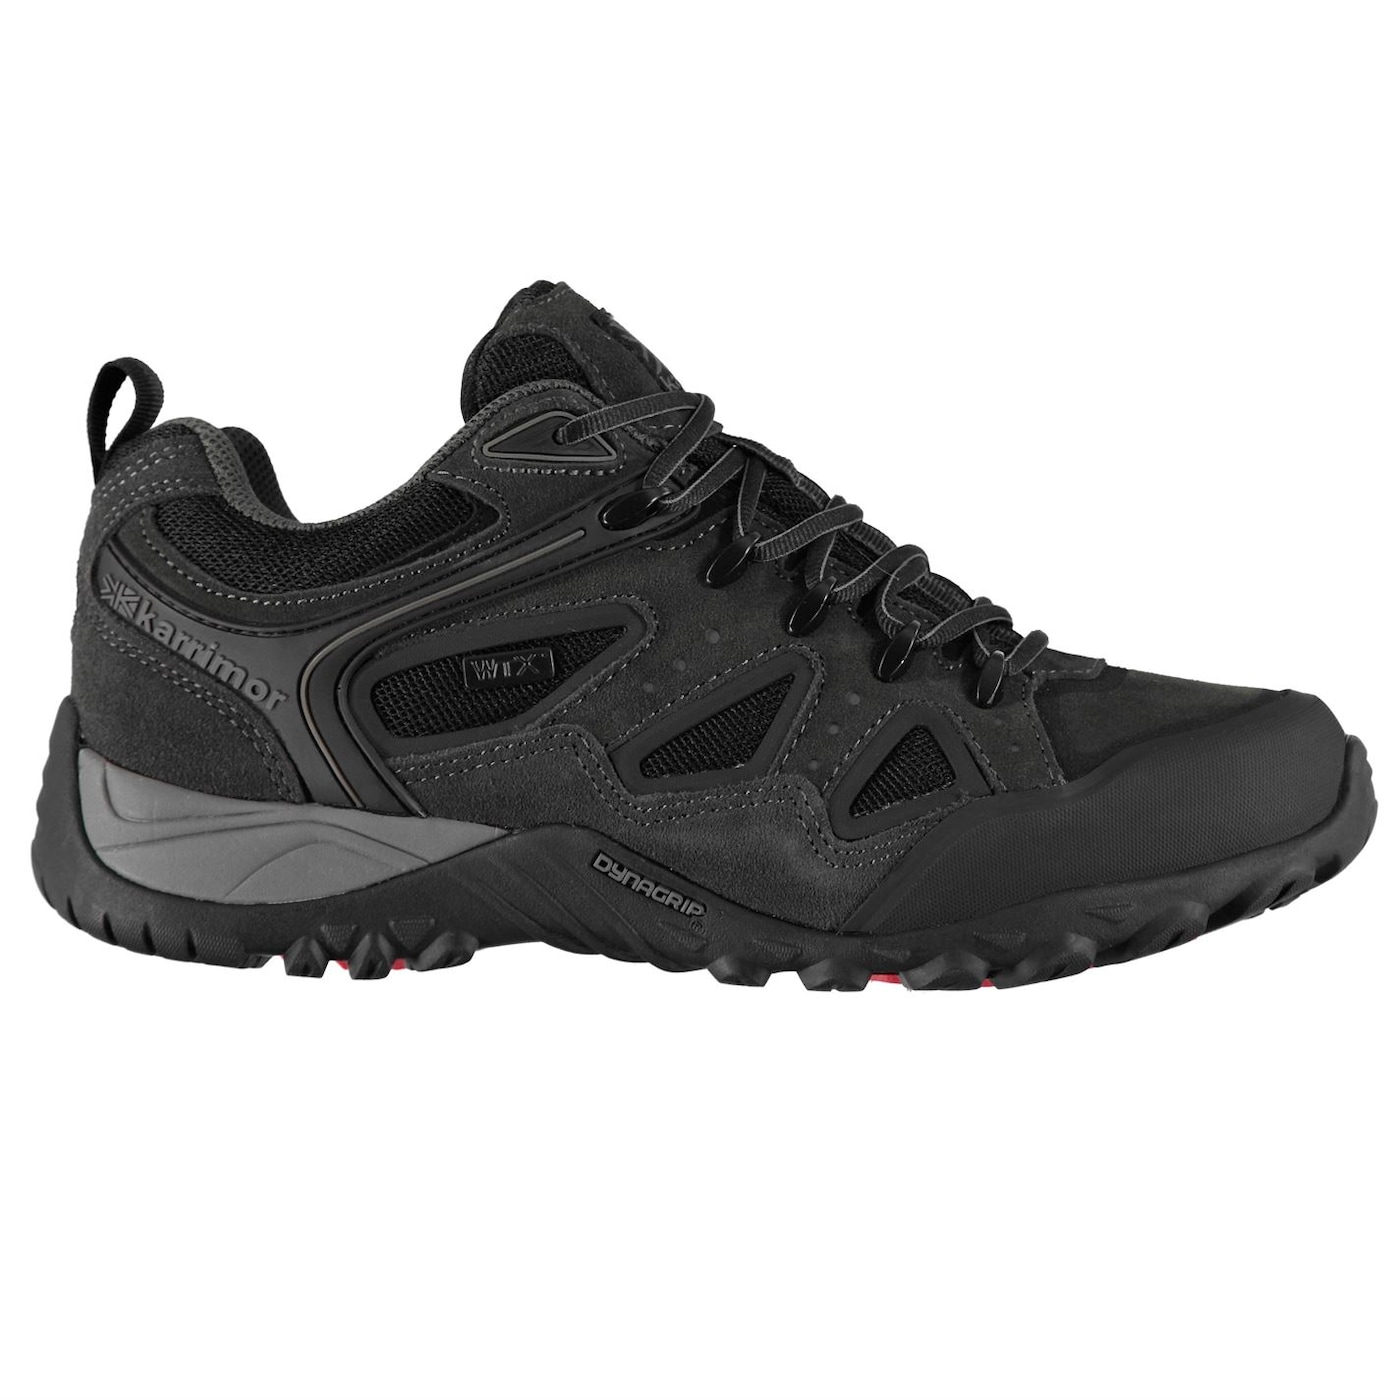 Karrimor Ridge WTX Mens Walking Shoes